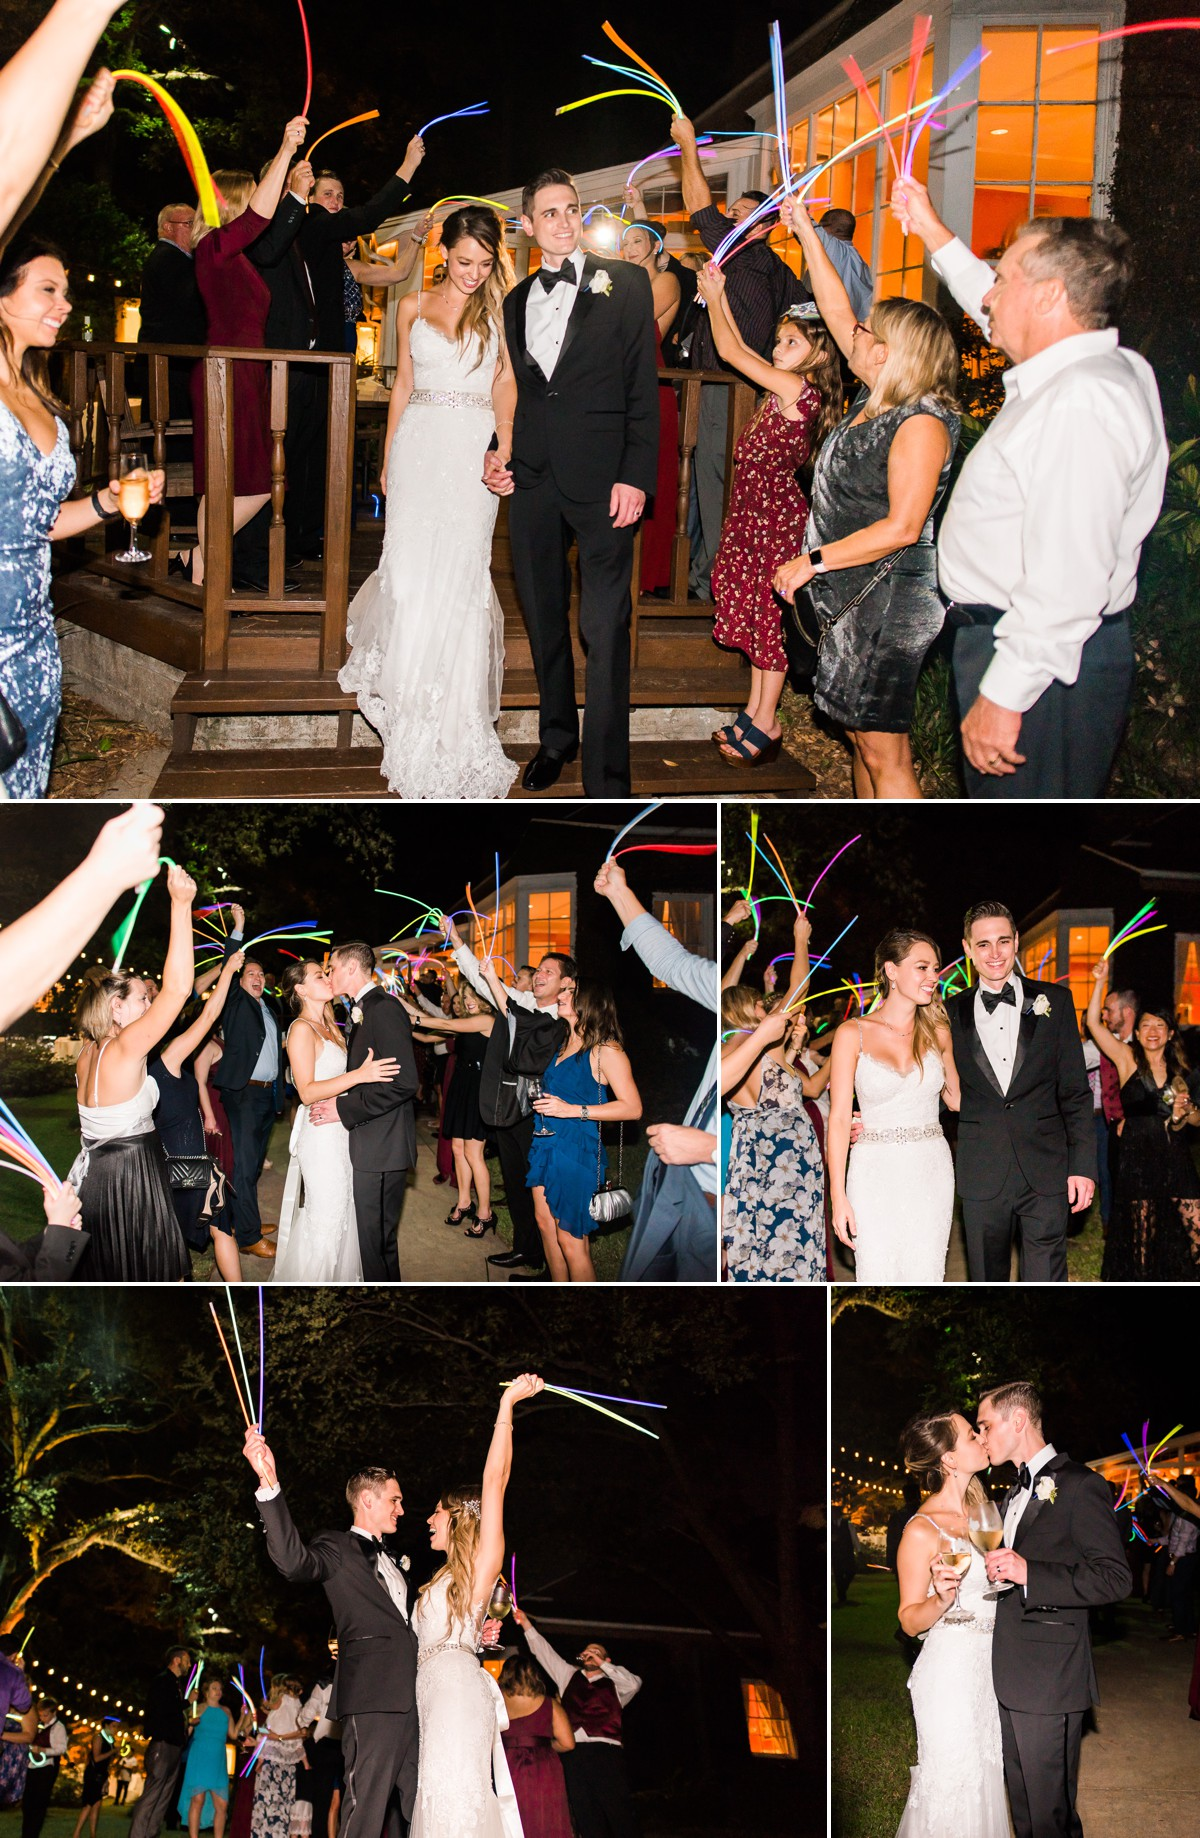 Manor House Wedding at The Houstonian Hotel Reception Exit Glow sticks Bride and Groom